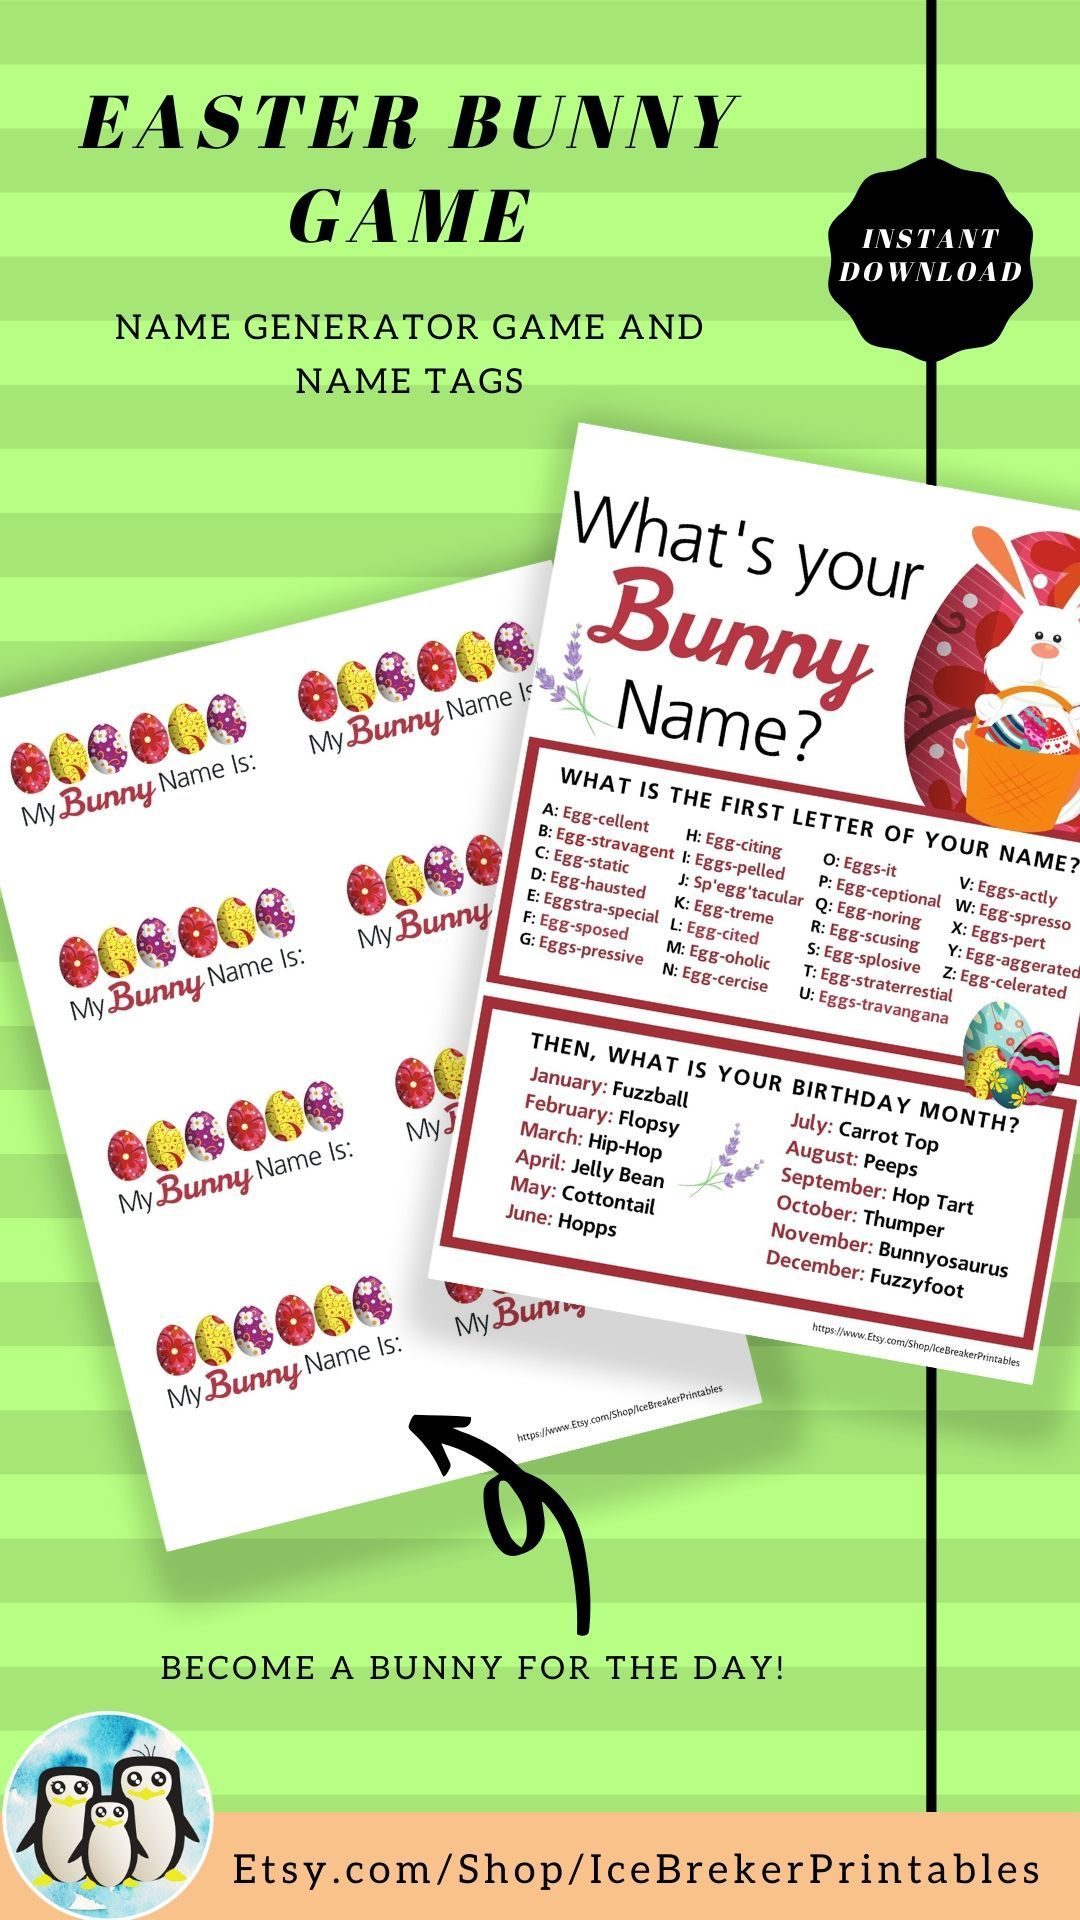 Easter Bunny Name Game that will keep you hopping for an